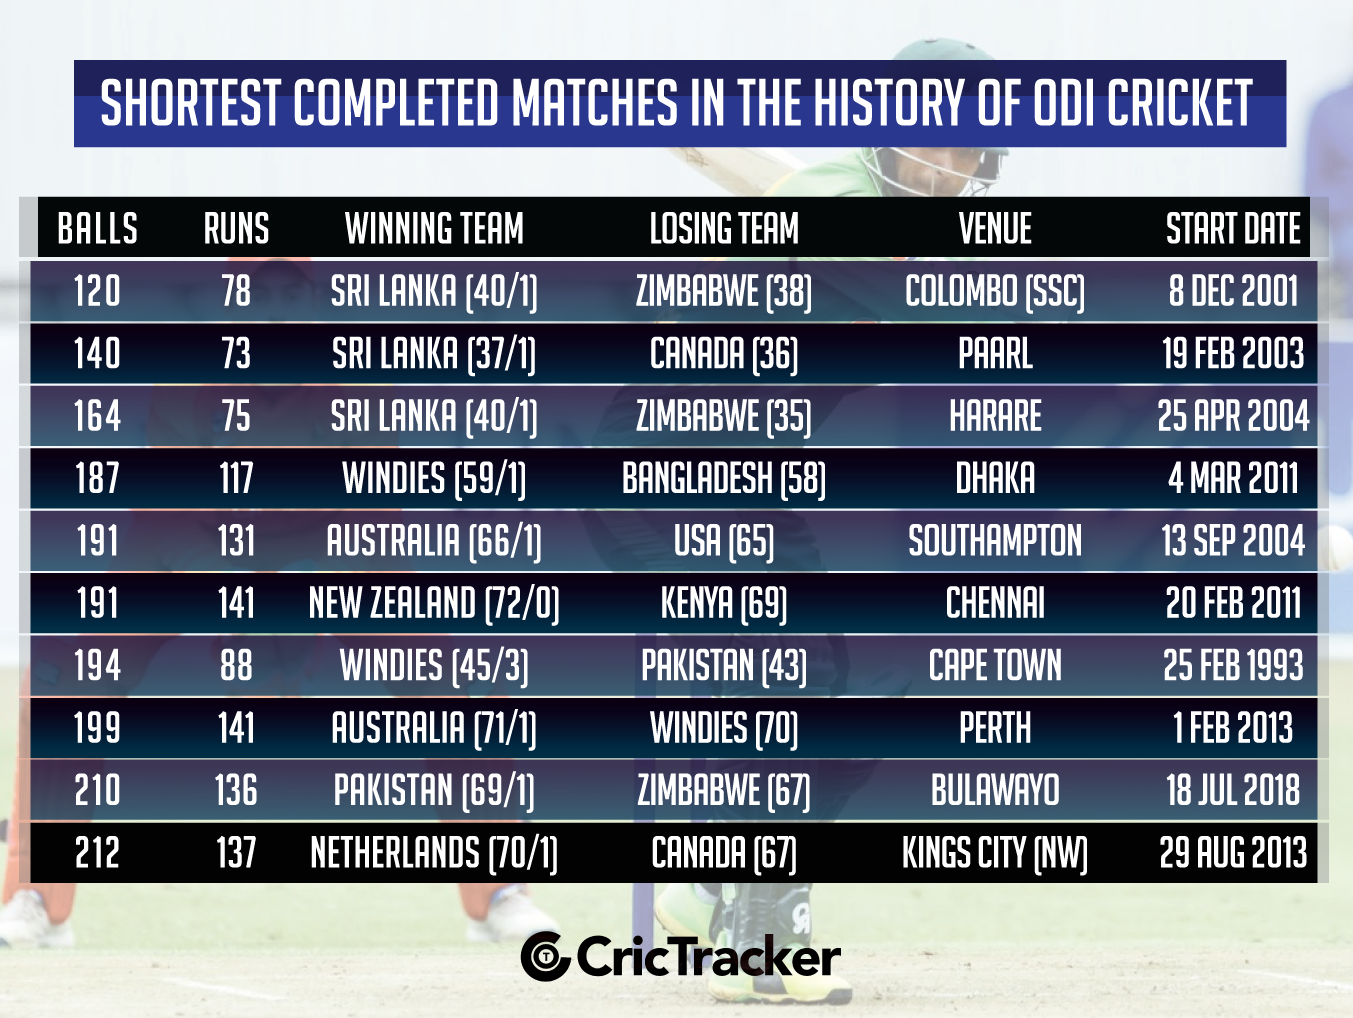 Shortest-completed-matches-in-the-history-of-ODI-cricket